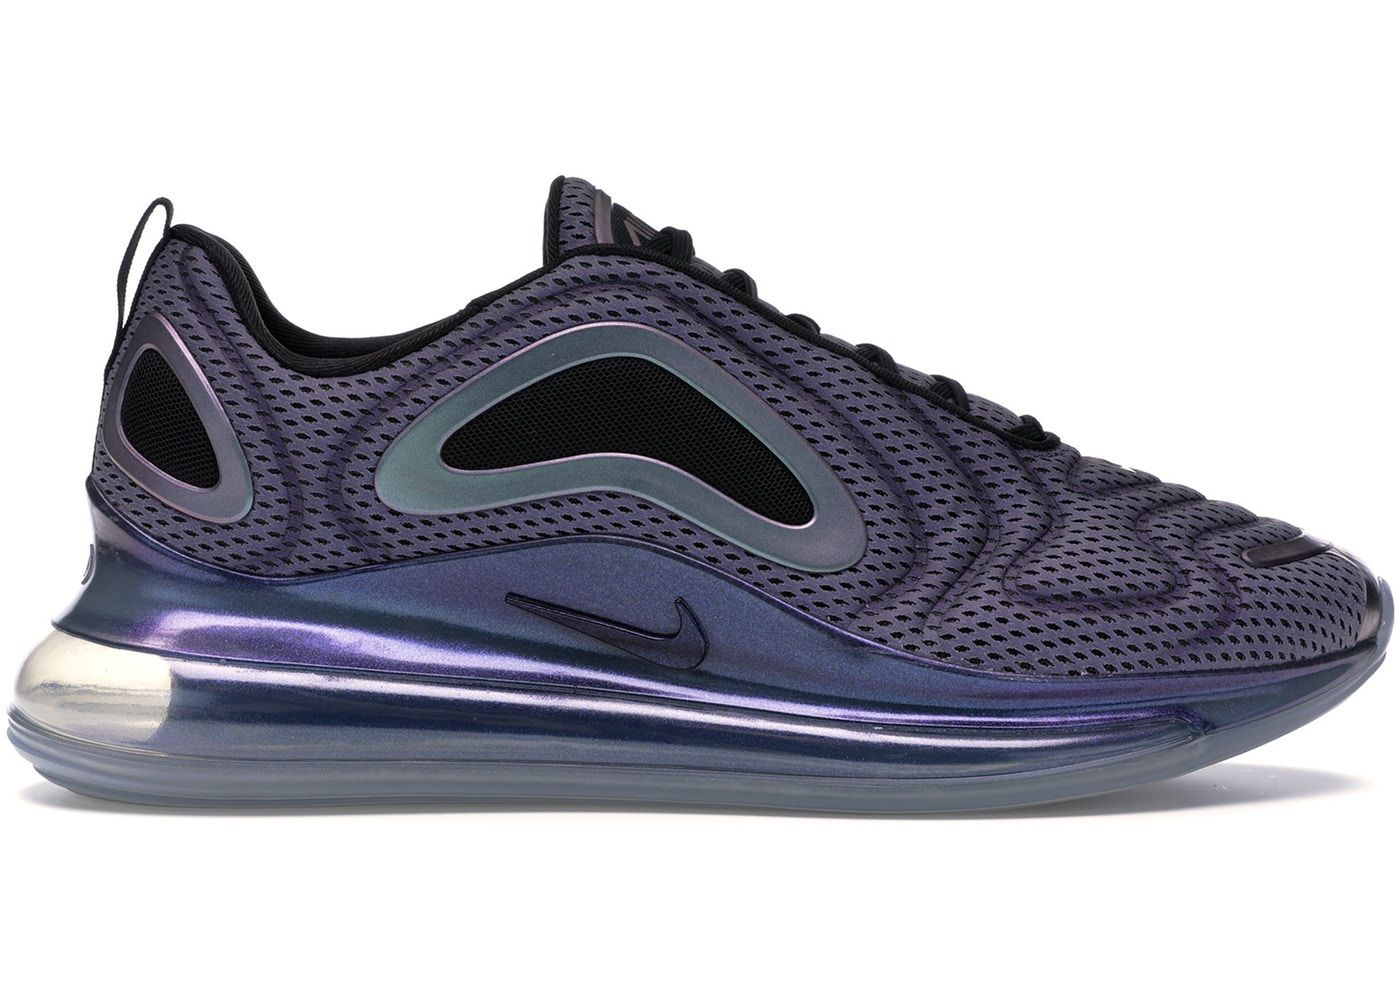 The New Nike Air Max 720 Is a Wearable Xenomorph